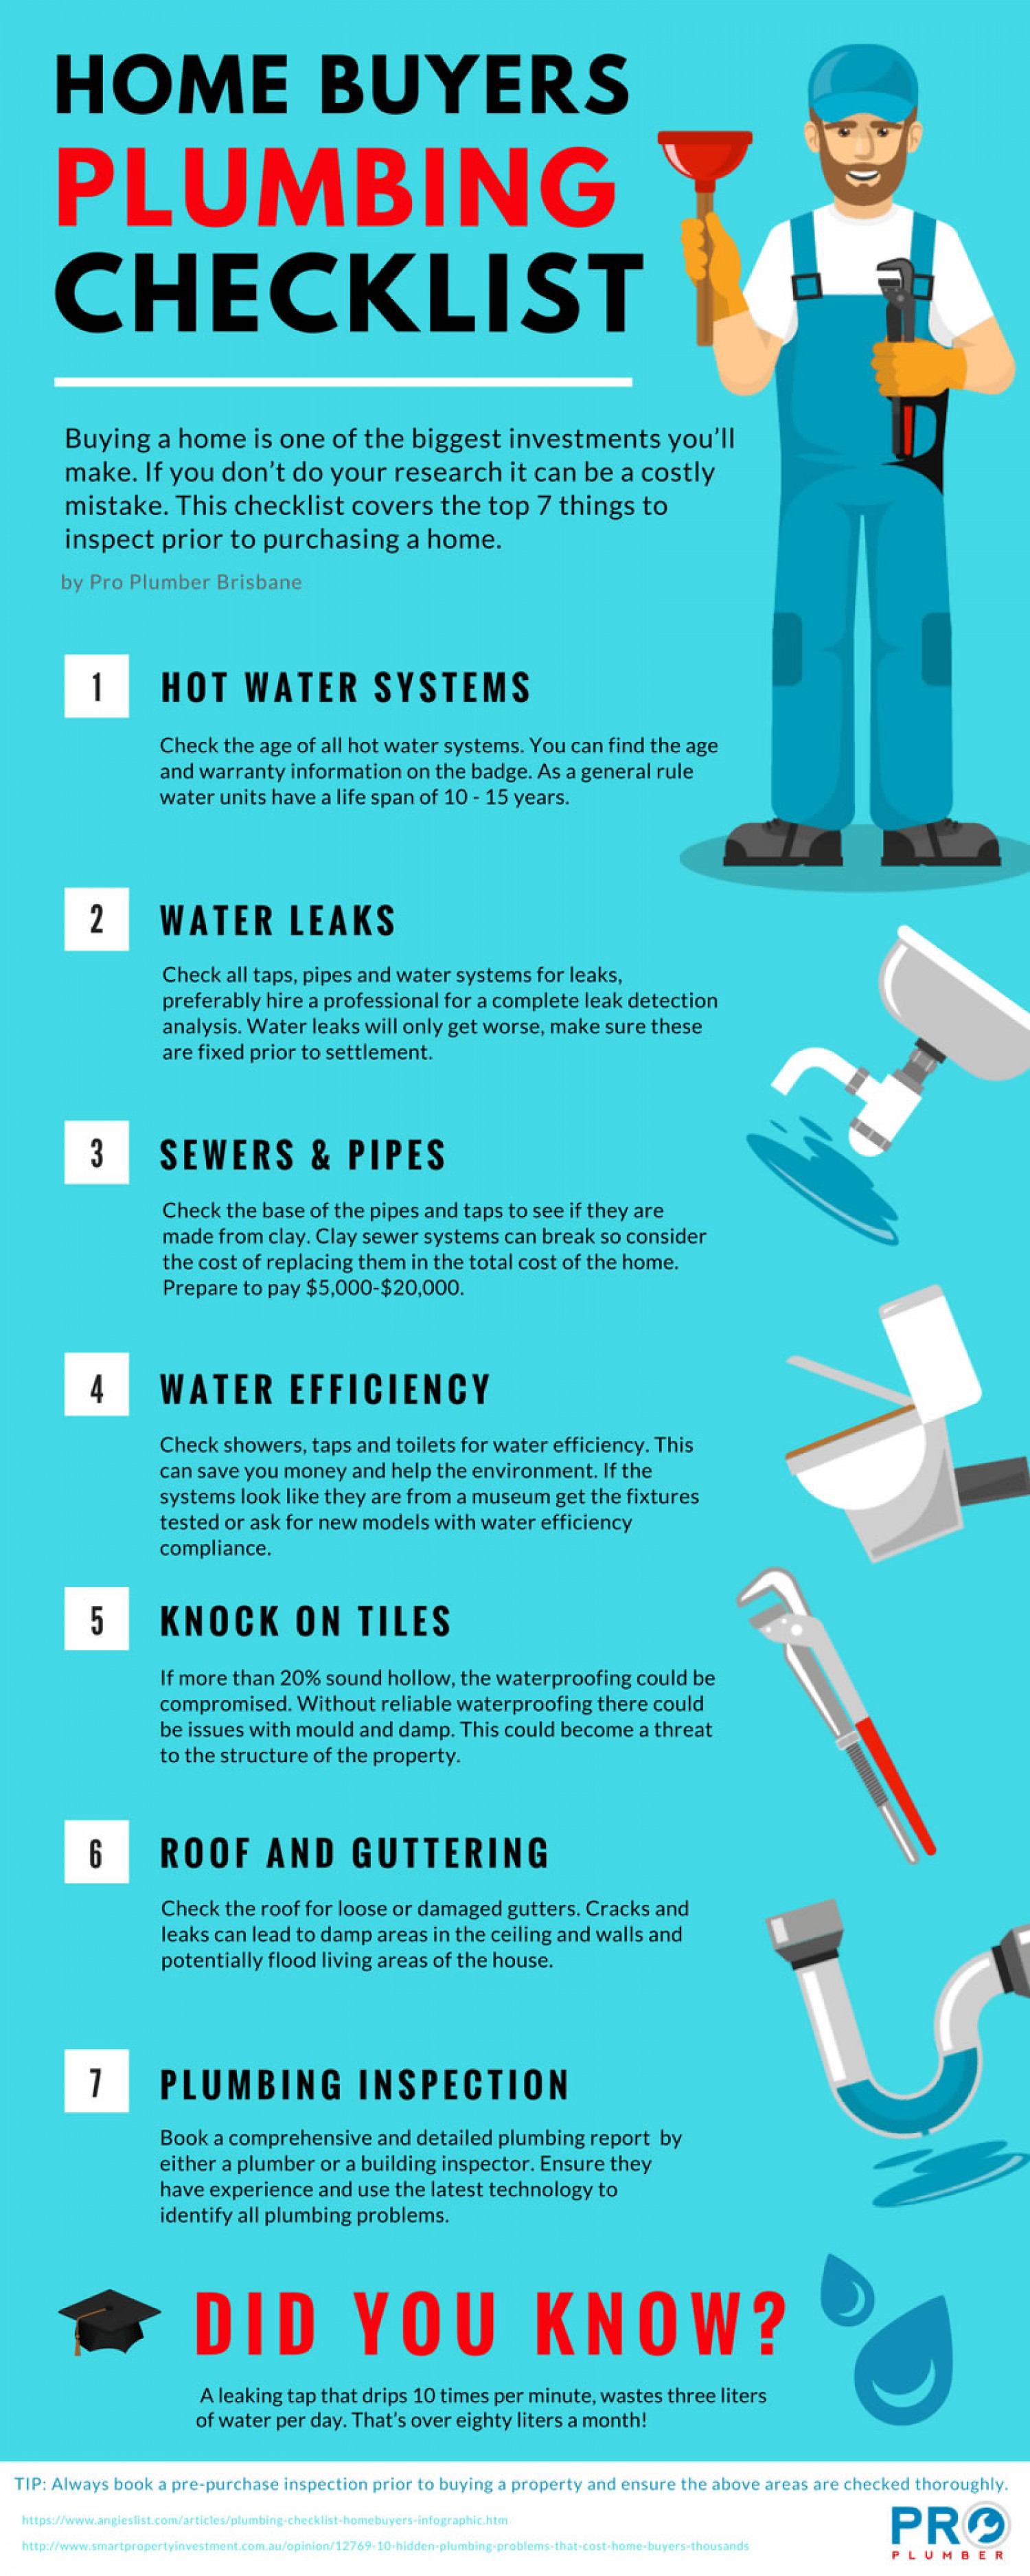 Home Buyers Plumbing Checklist Infographic